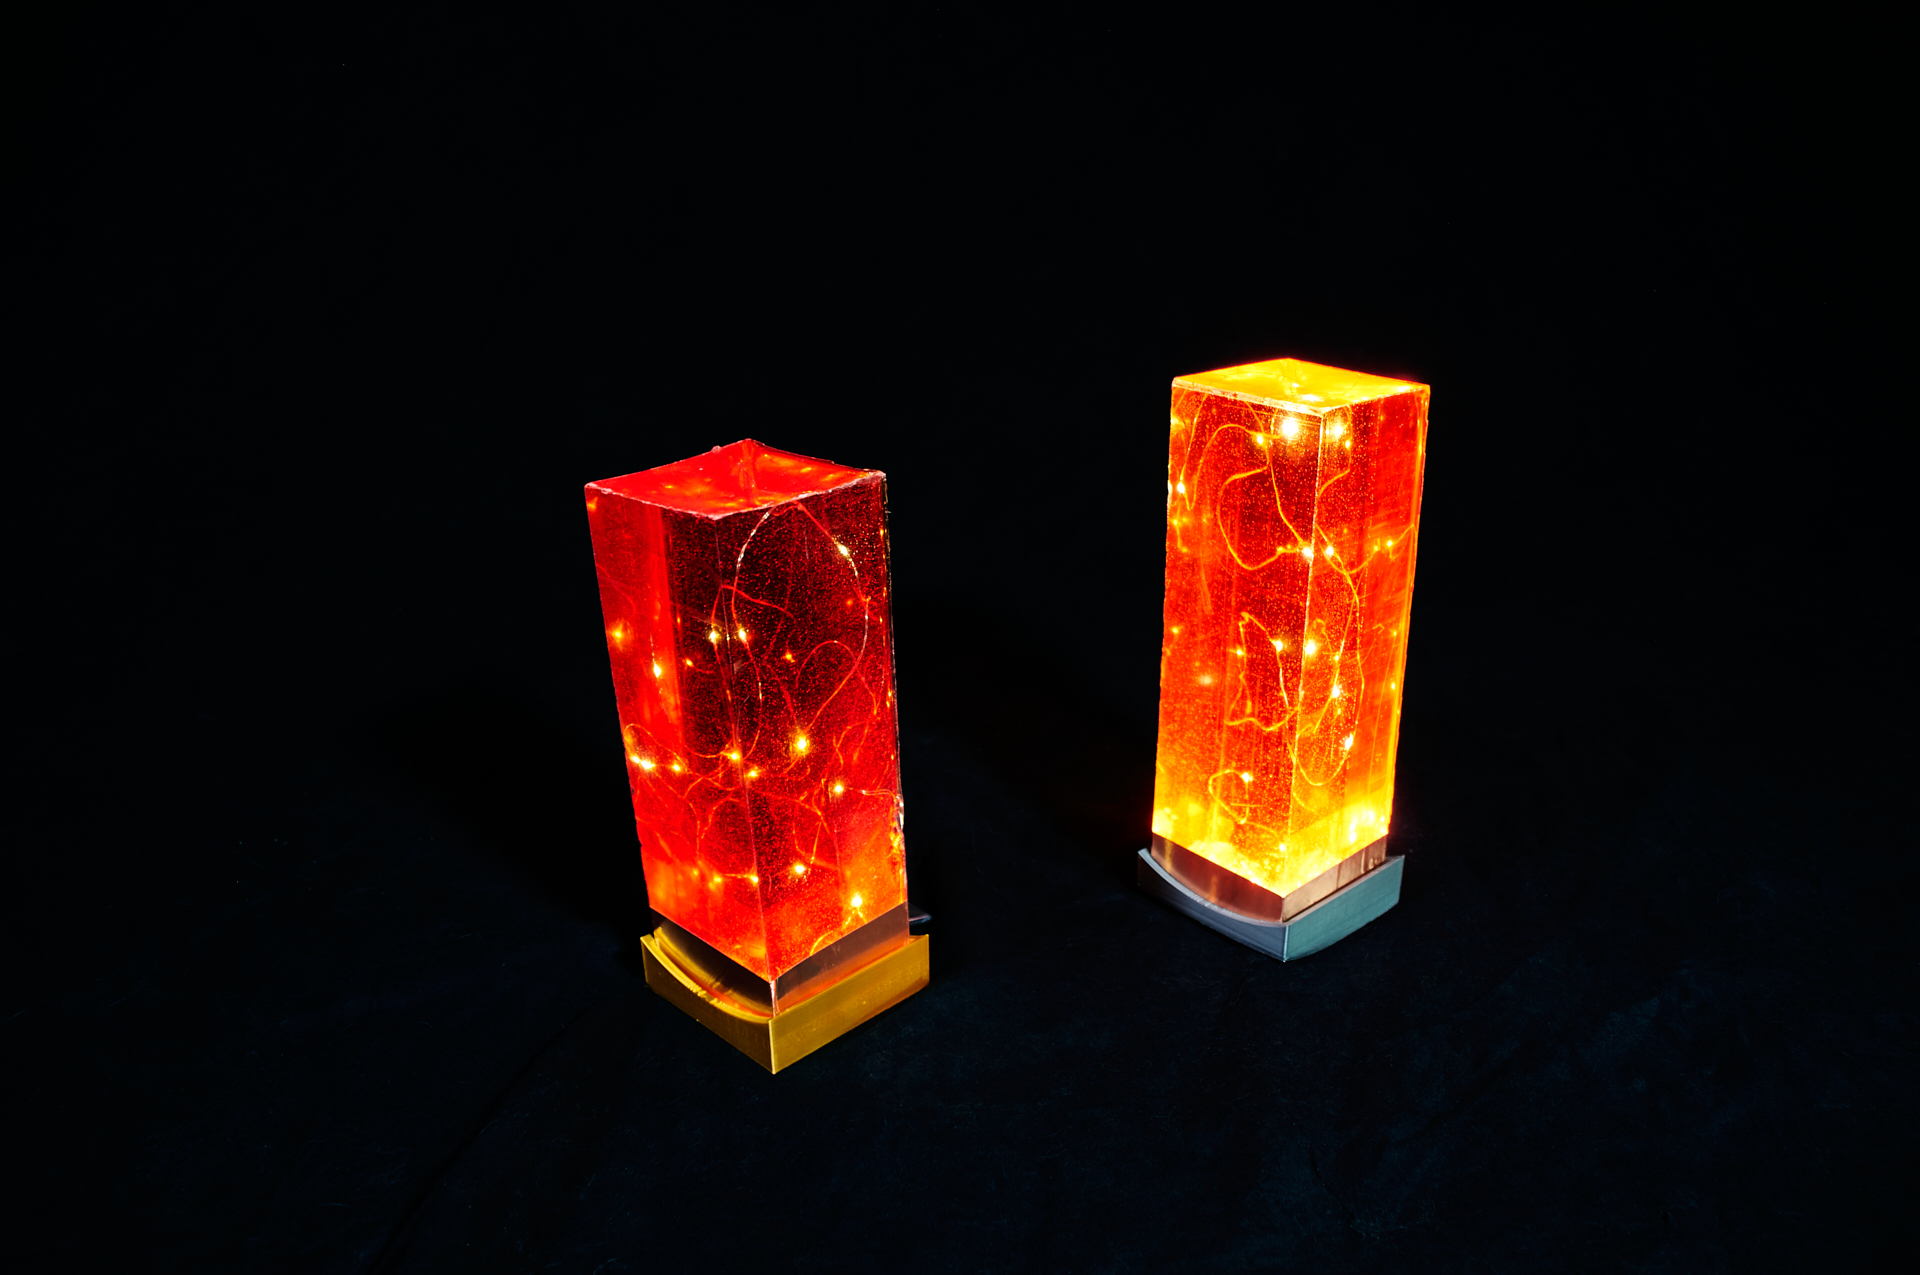 projects_Resin_Torches_01.jpg